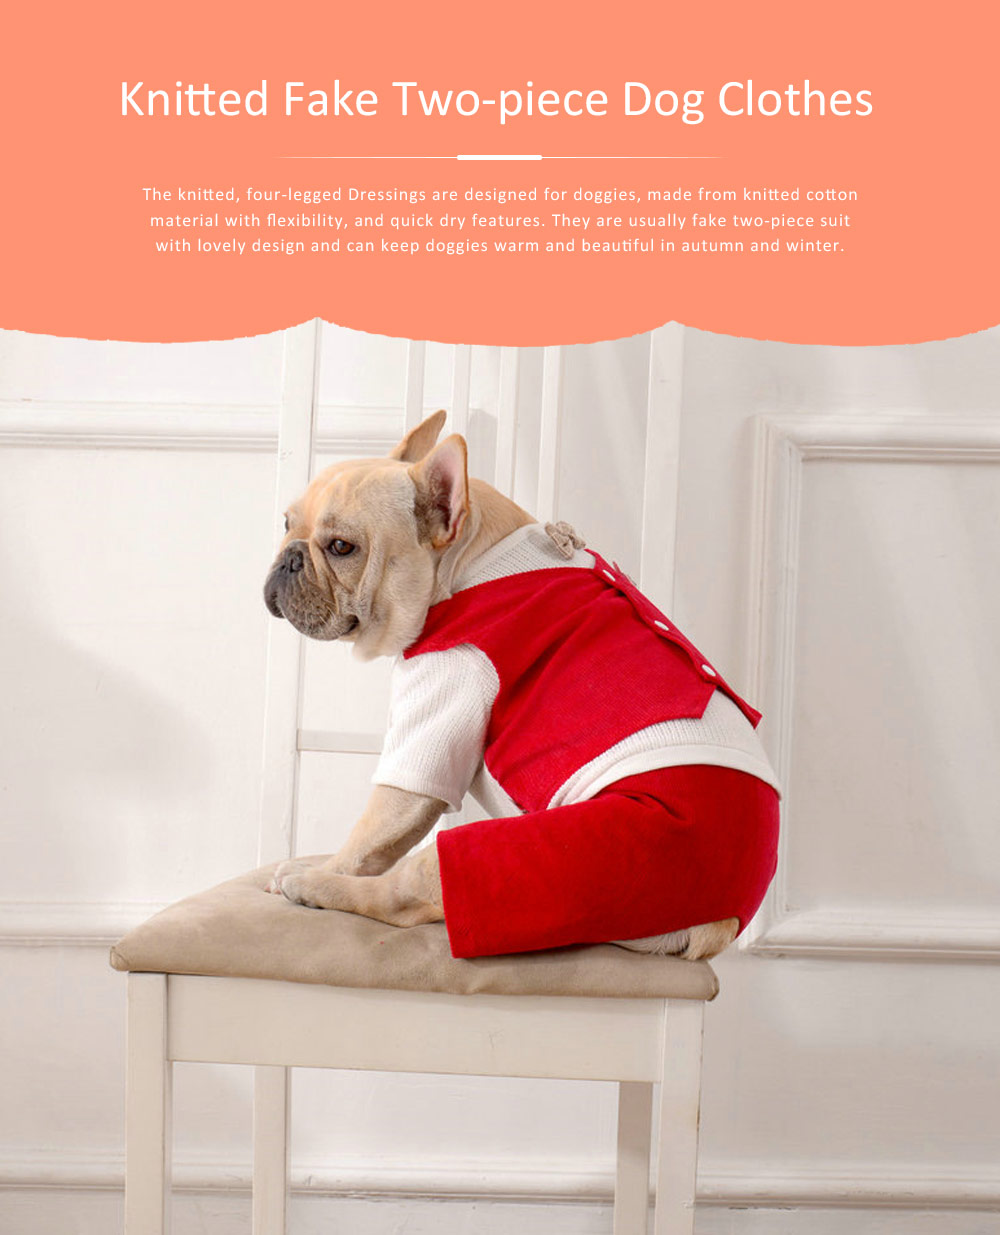 Dog Dressings Four-legged Knitted Fake Two-piece Pet Clothes in Autumn and Winter Pet Clothes 0